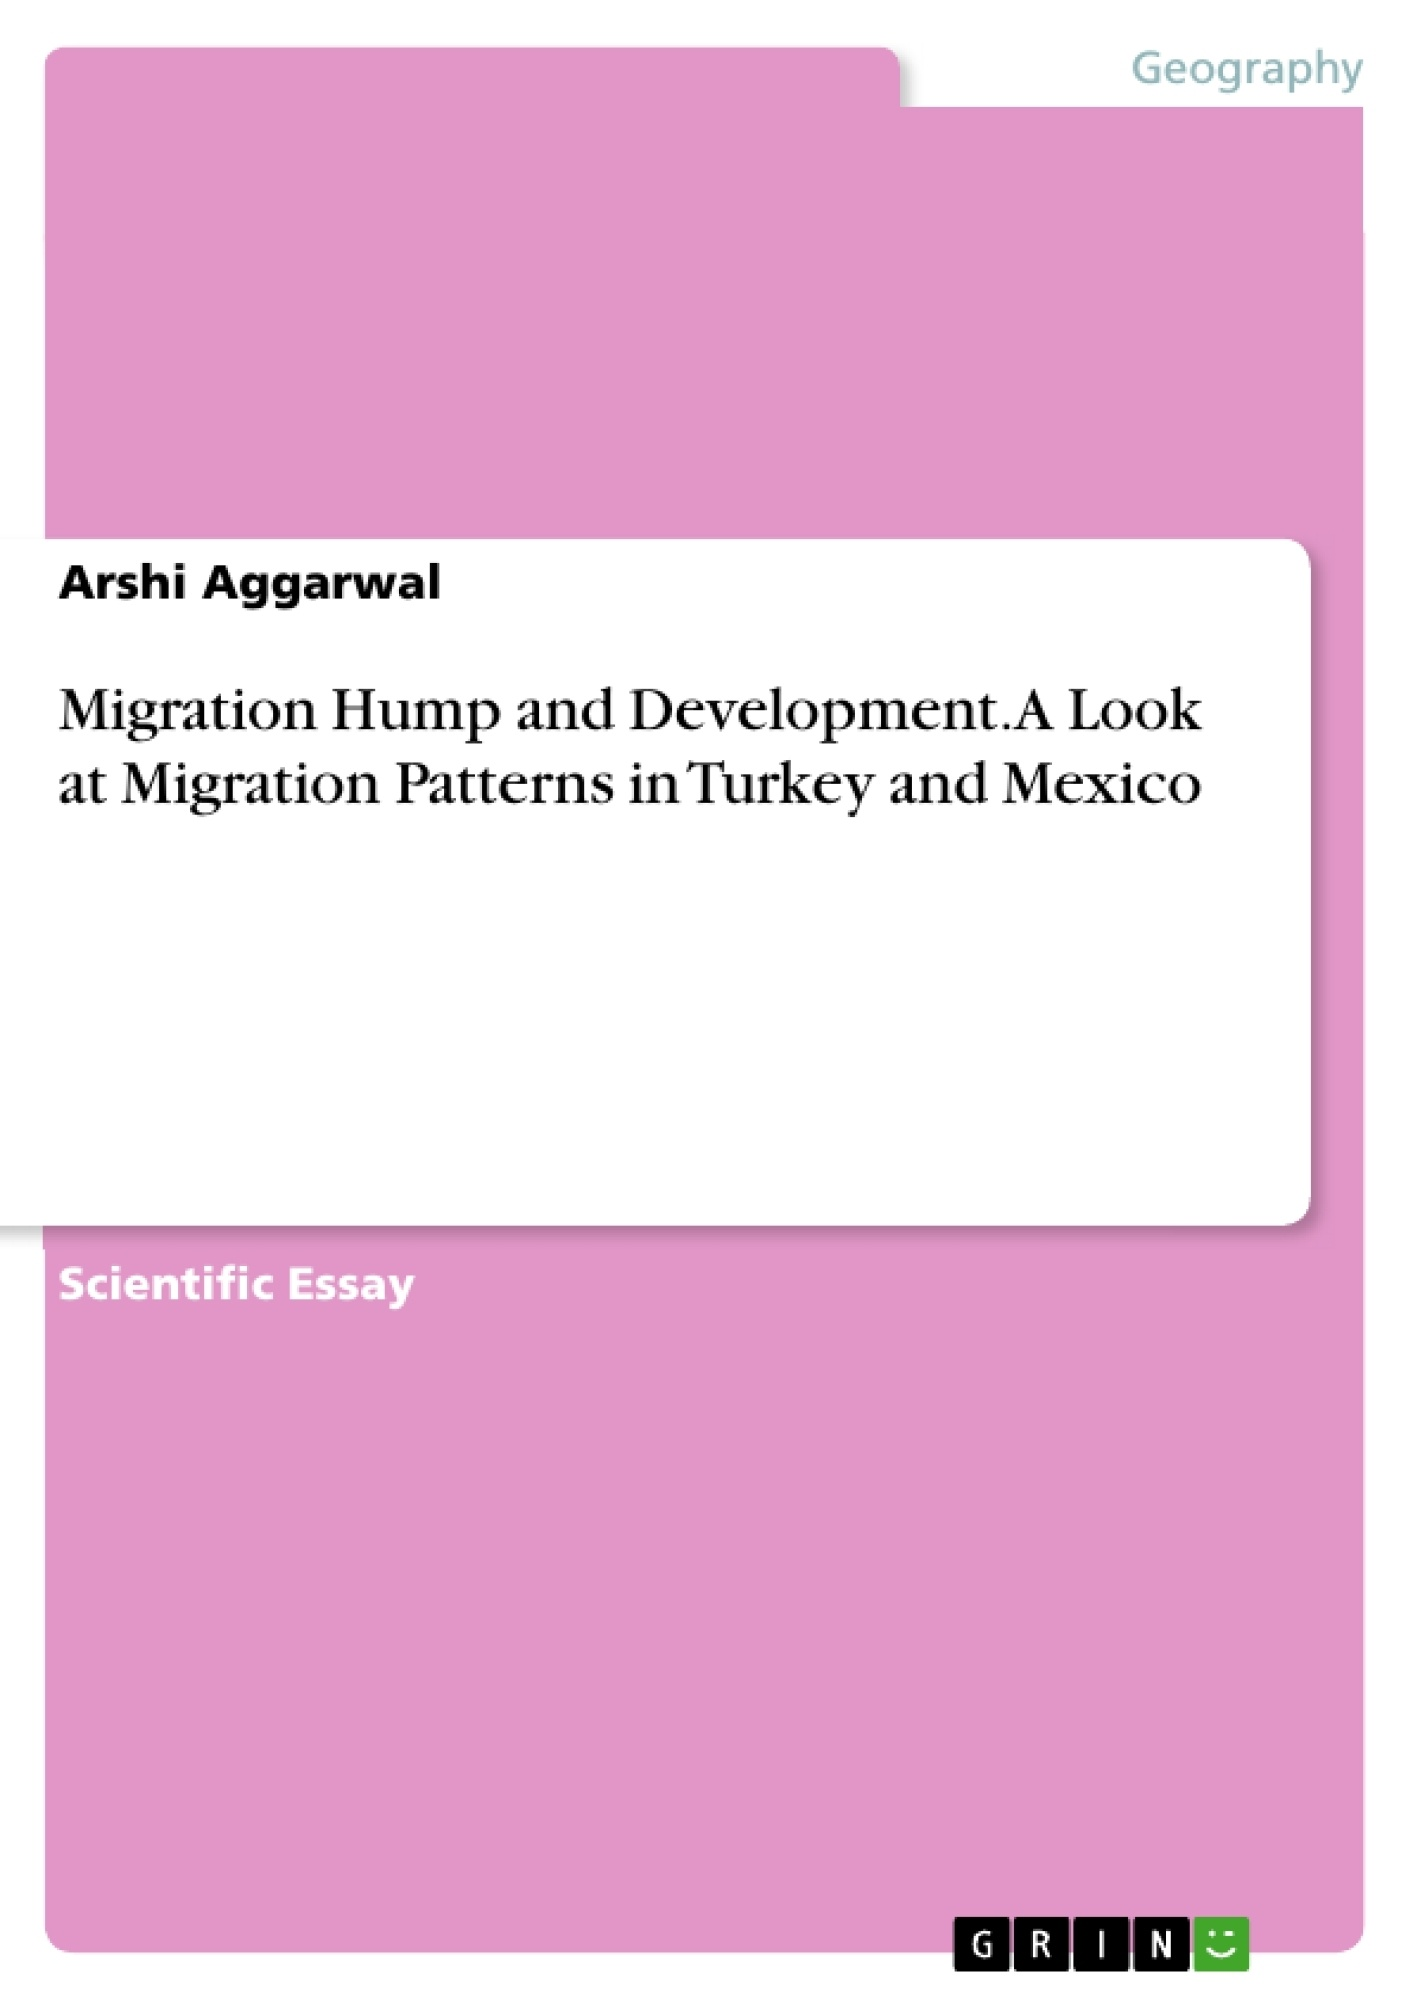 Title: Migration Hump and Development. A Look at Migration Patterns in Turkey and Mexico